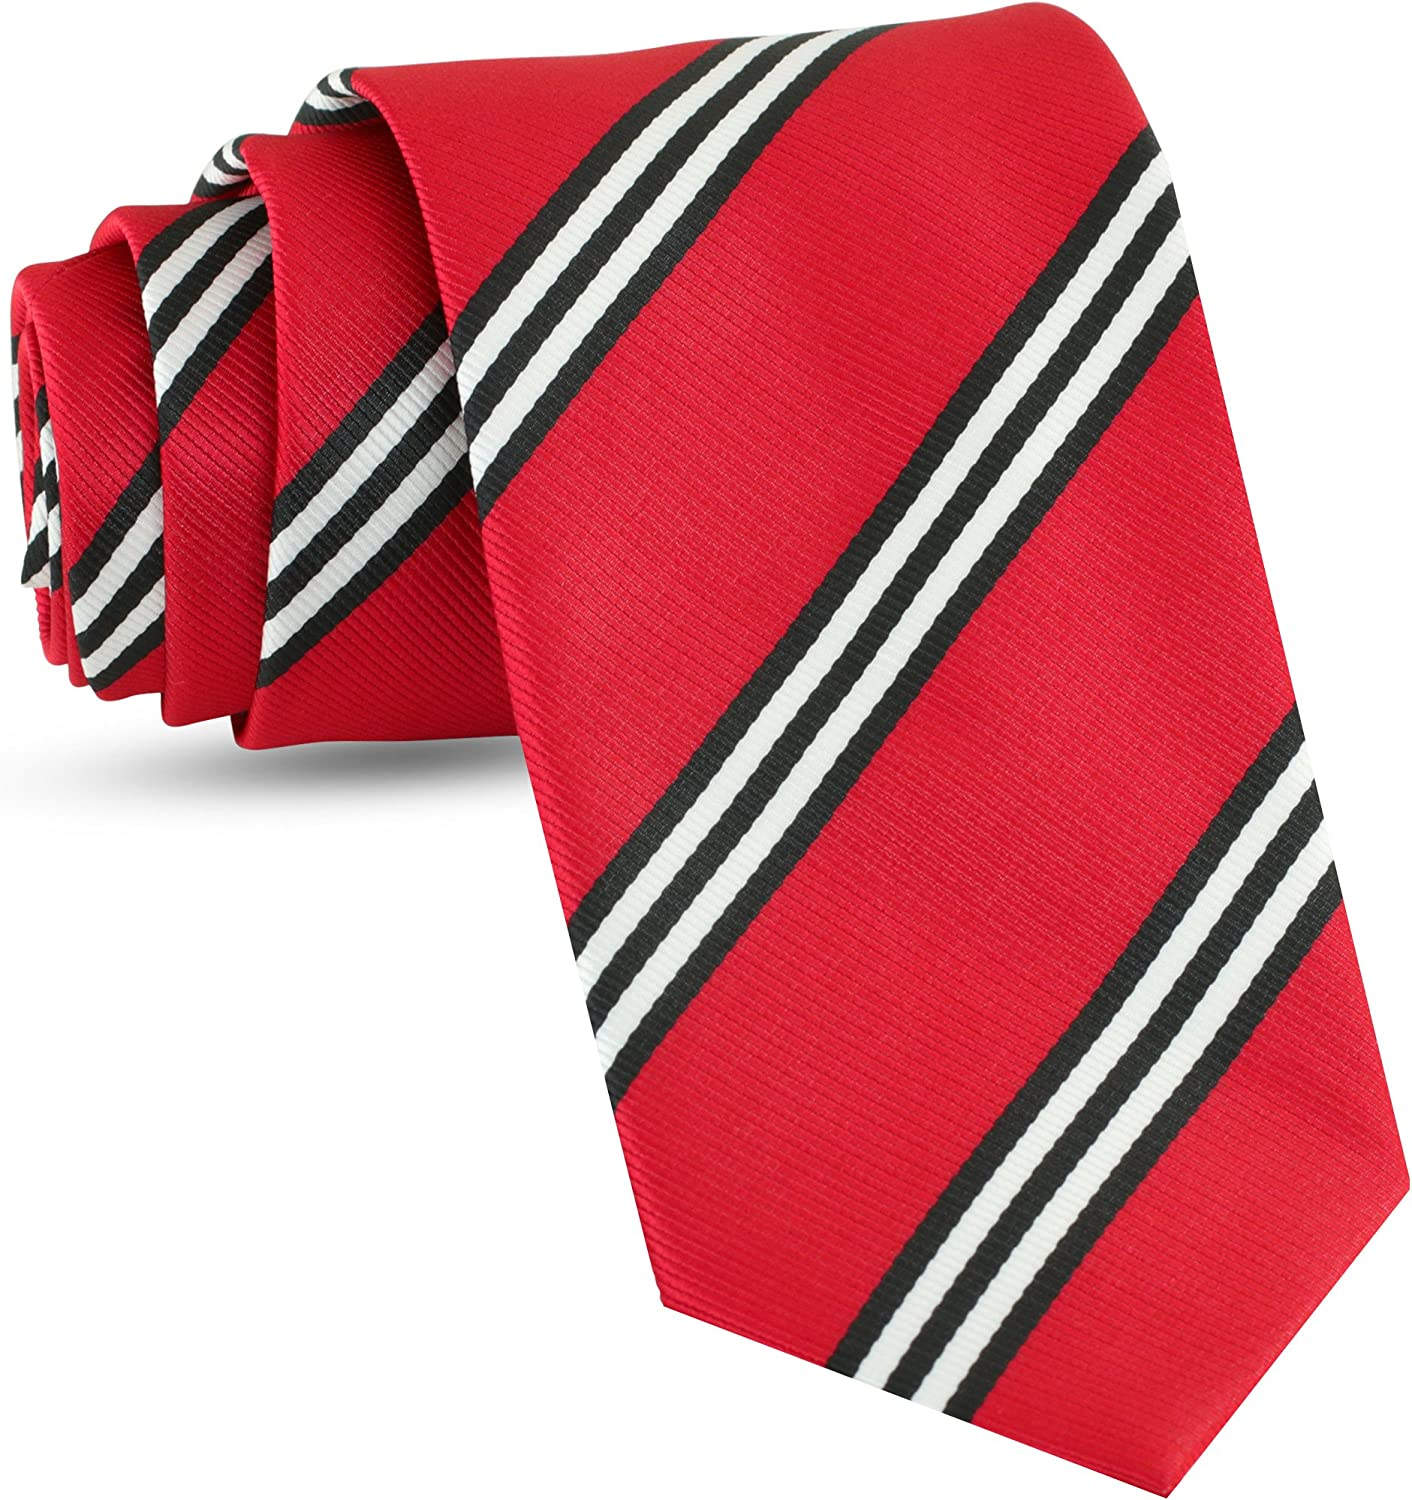 Luther Pike Seattle Handmade Striped Ties For Men Woven Mens Ties Stripes Tie Necktie